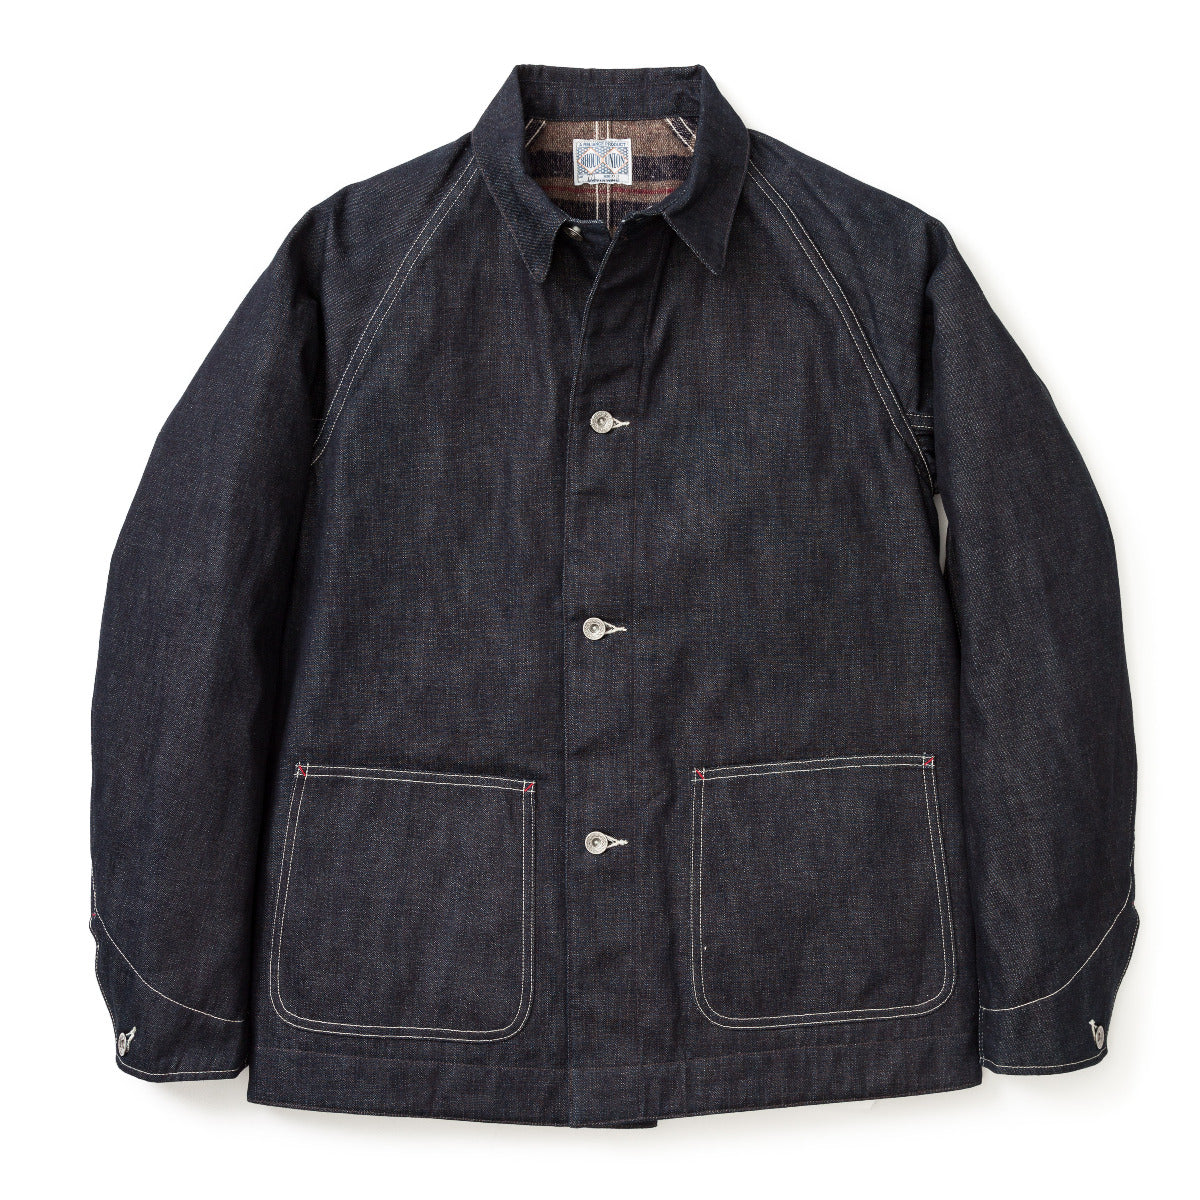 8HU Wool Lined Chore Coat